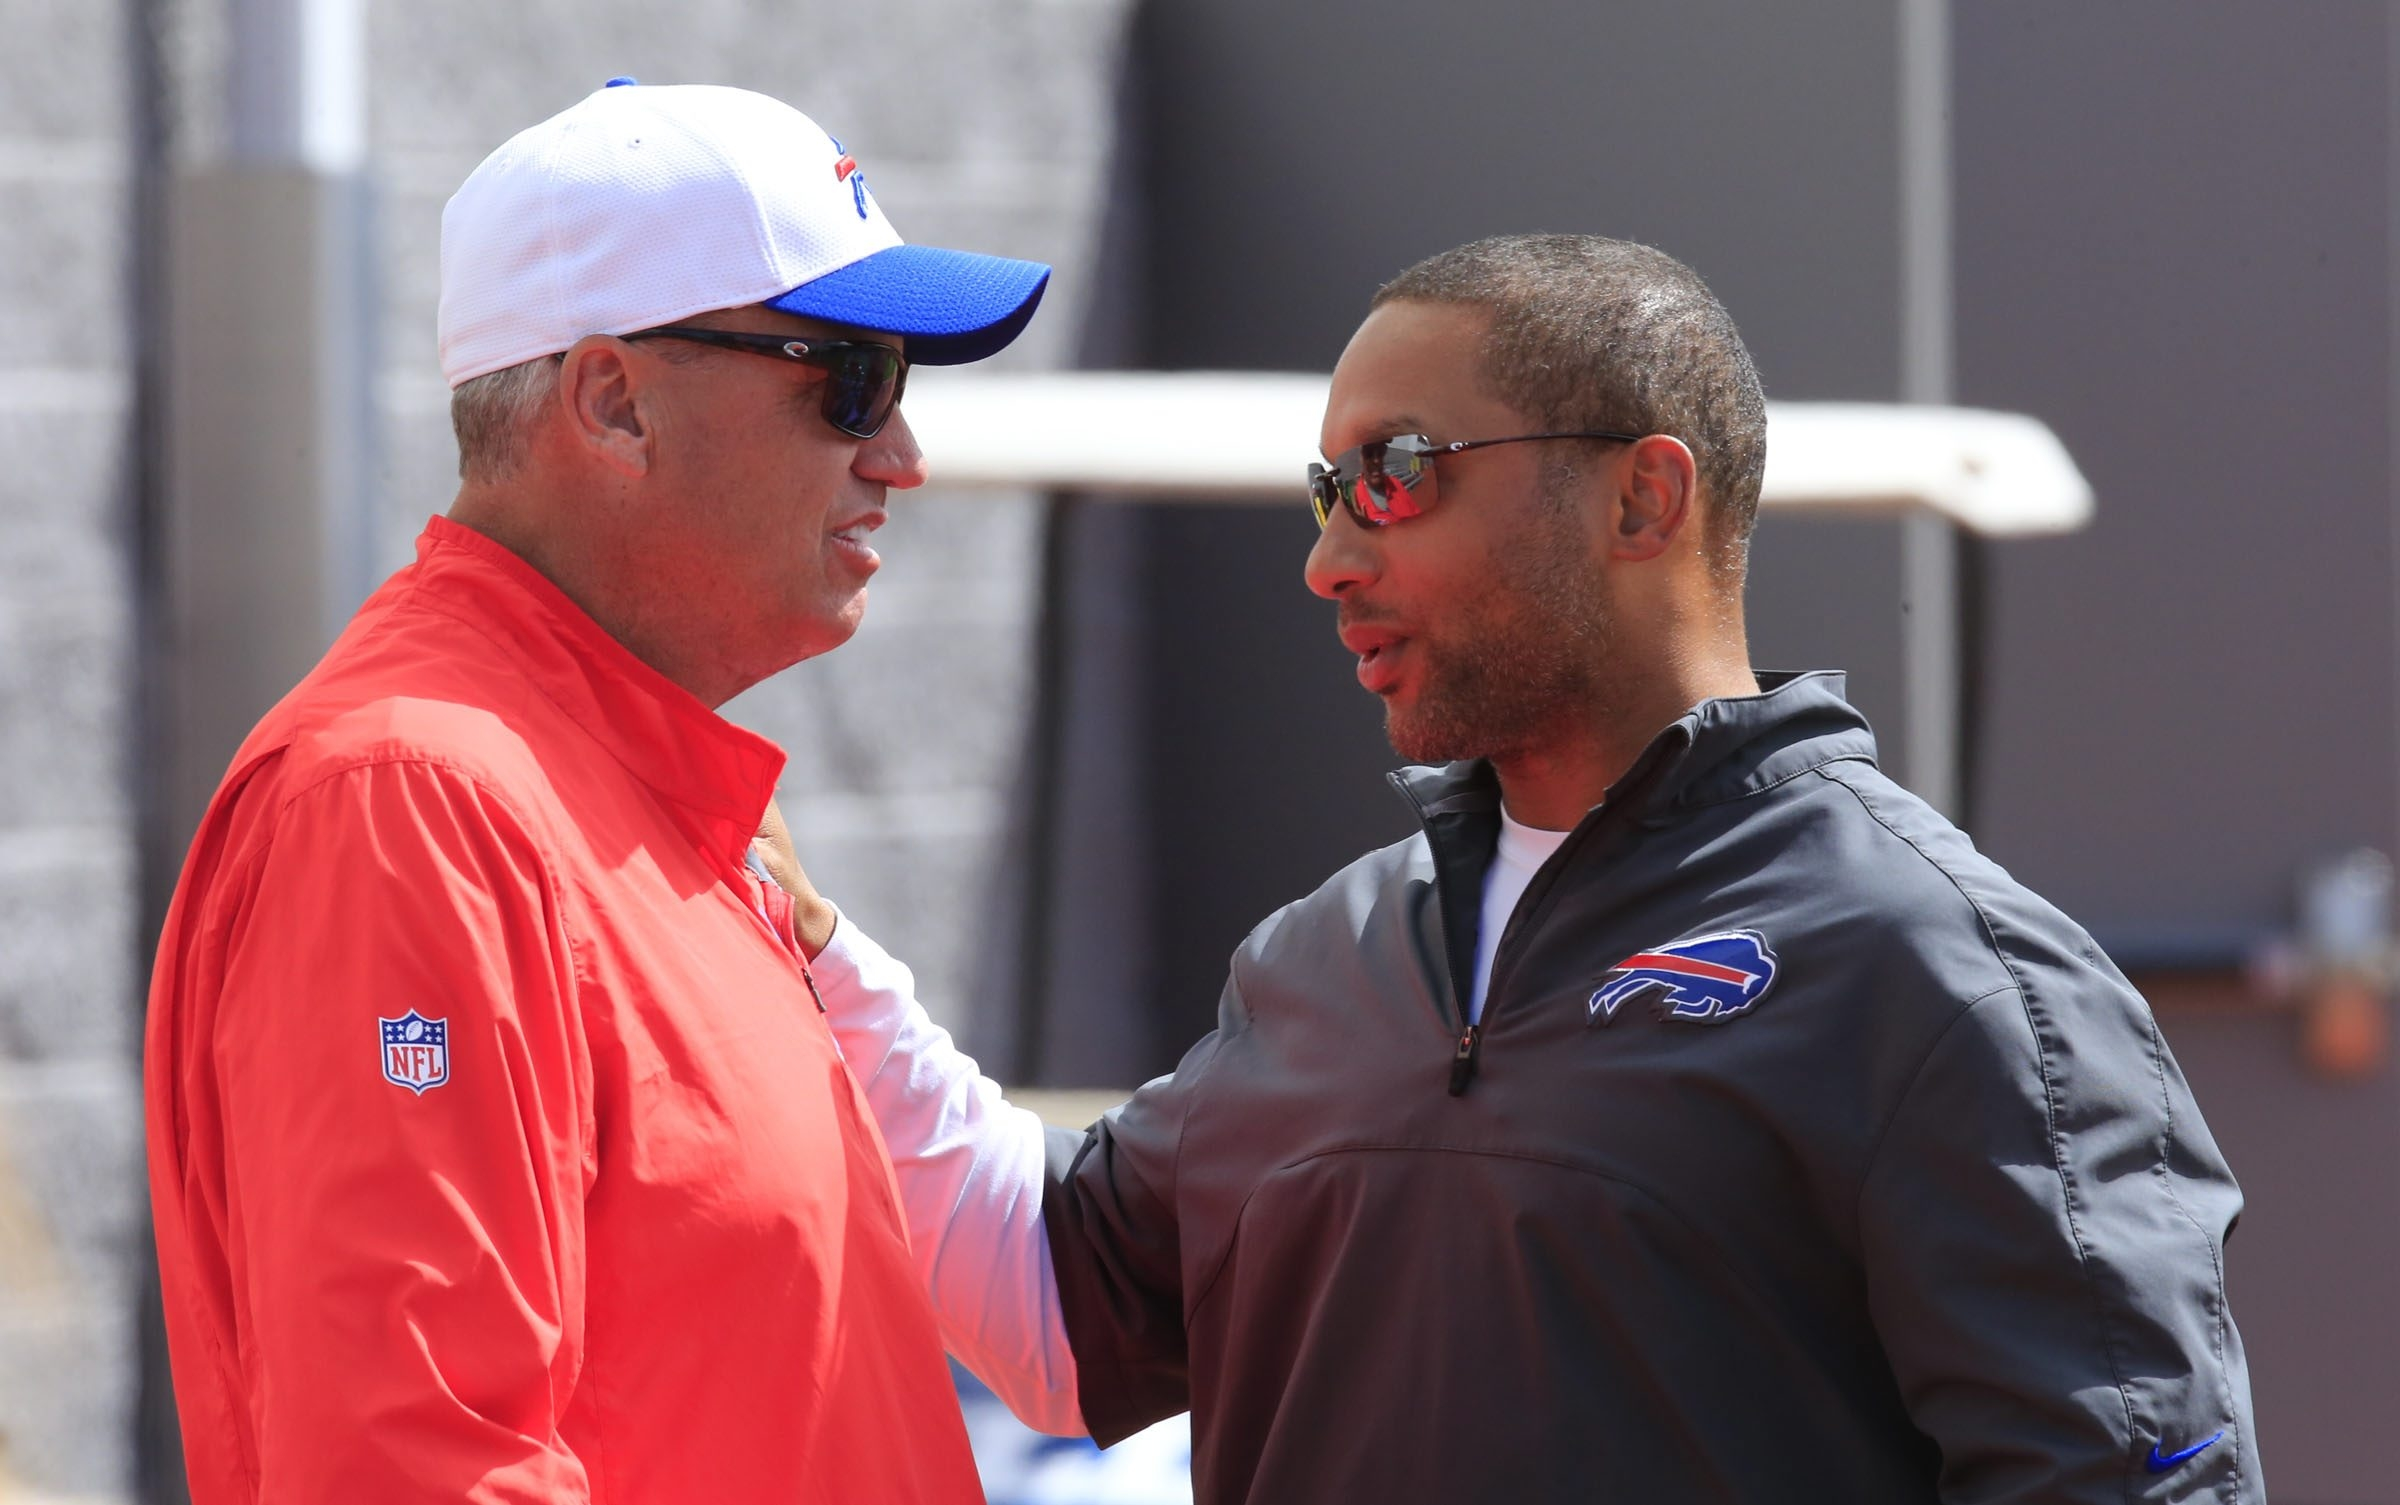 If the Bills' season isn't a success, it's likely General Manager Doug Whaley, right, would take the big fall instead of coach Rex Ryan.